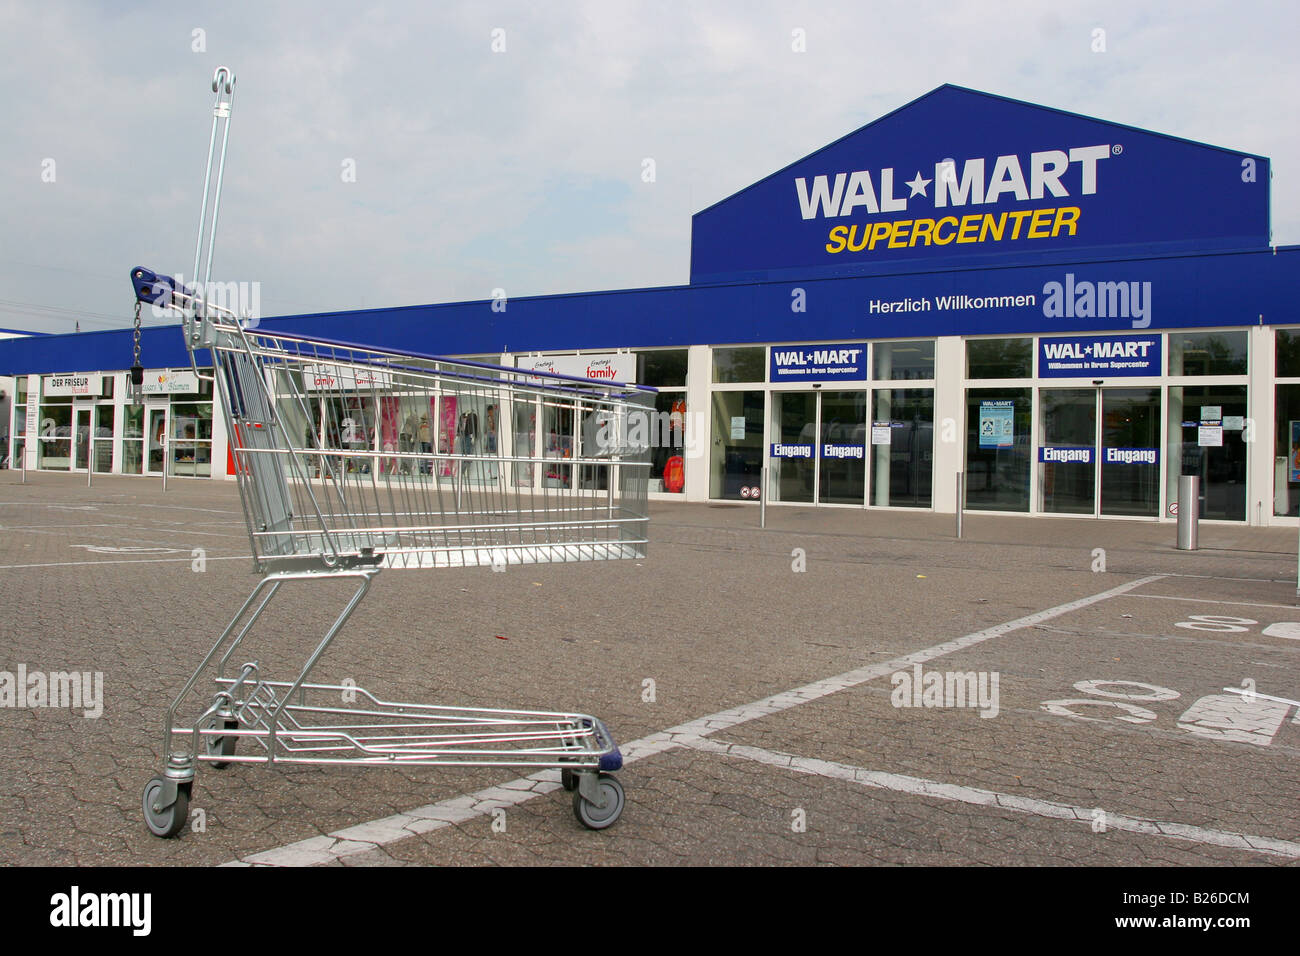 a overview of wal mart a largest retailer in the world Summary walmart stores, inc is the largest retailer in the world terms of revenues and number of employees (ferguson, 2017) the company annual revenues have exceeded $485 billion in the fiscal year ending in 2015.